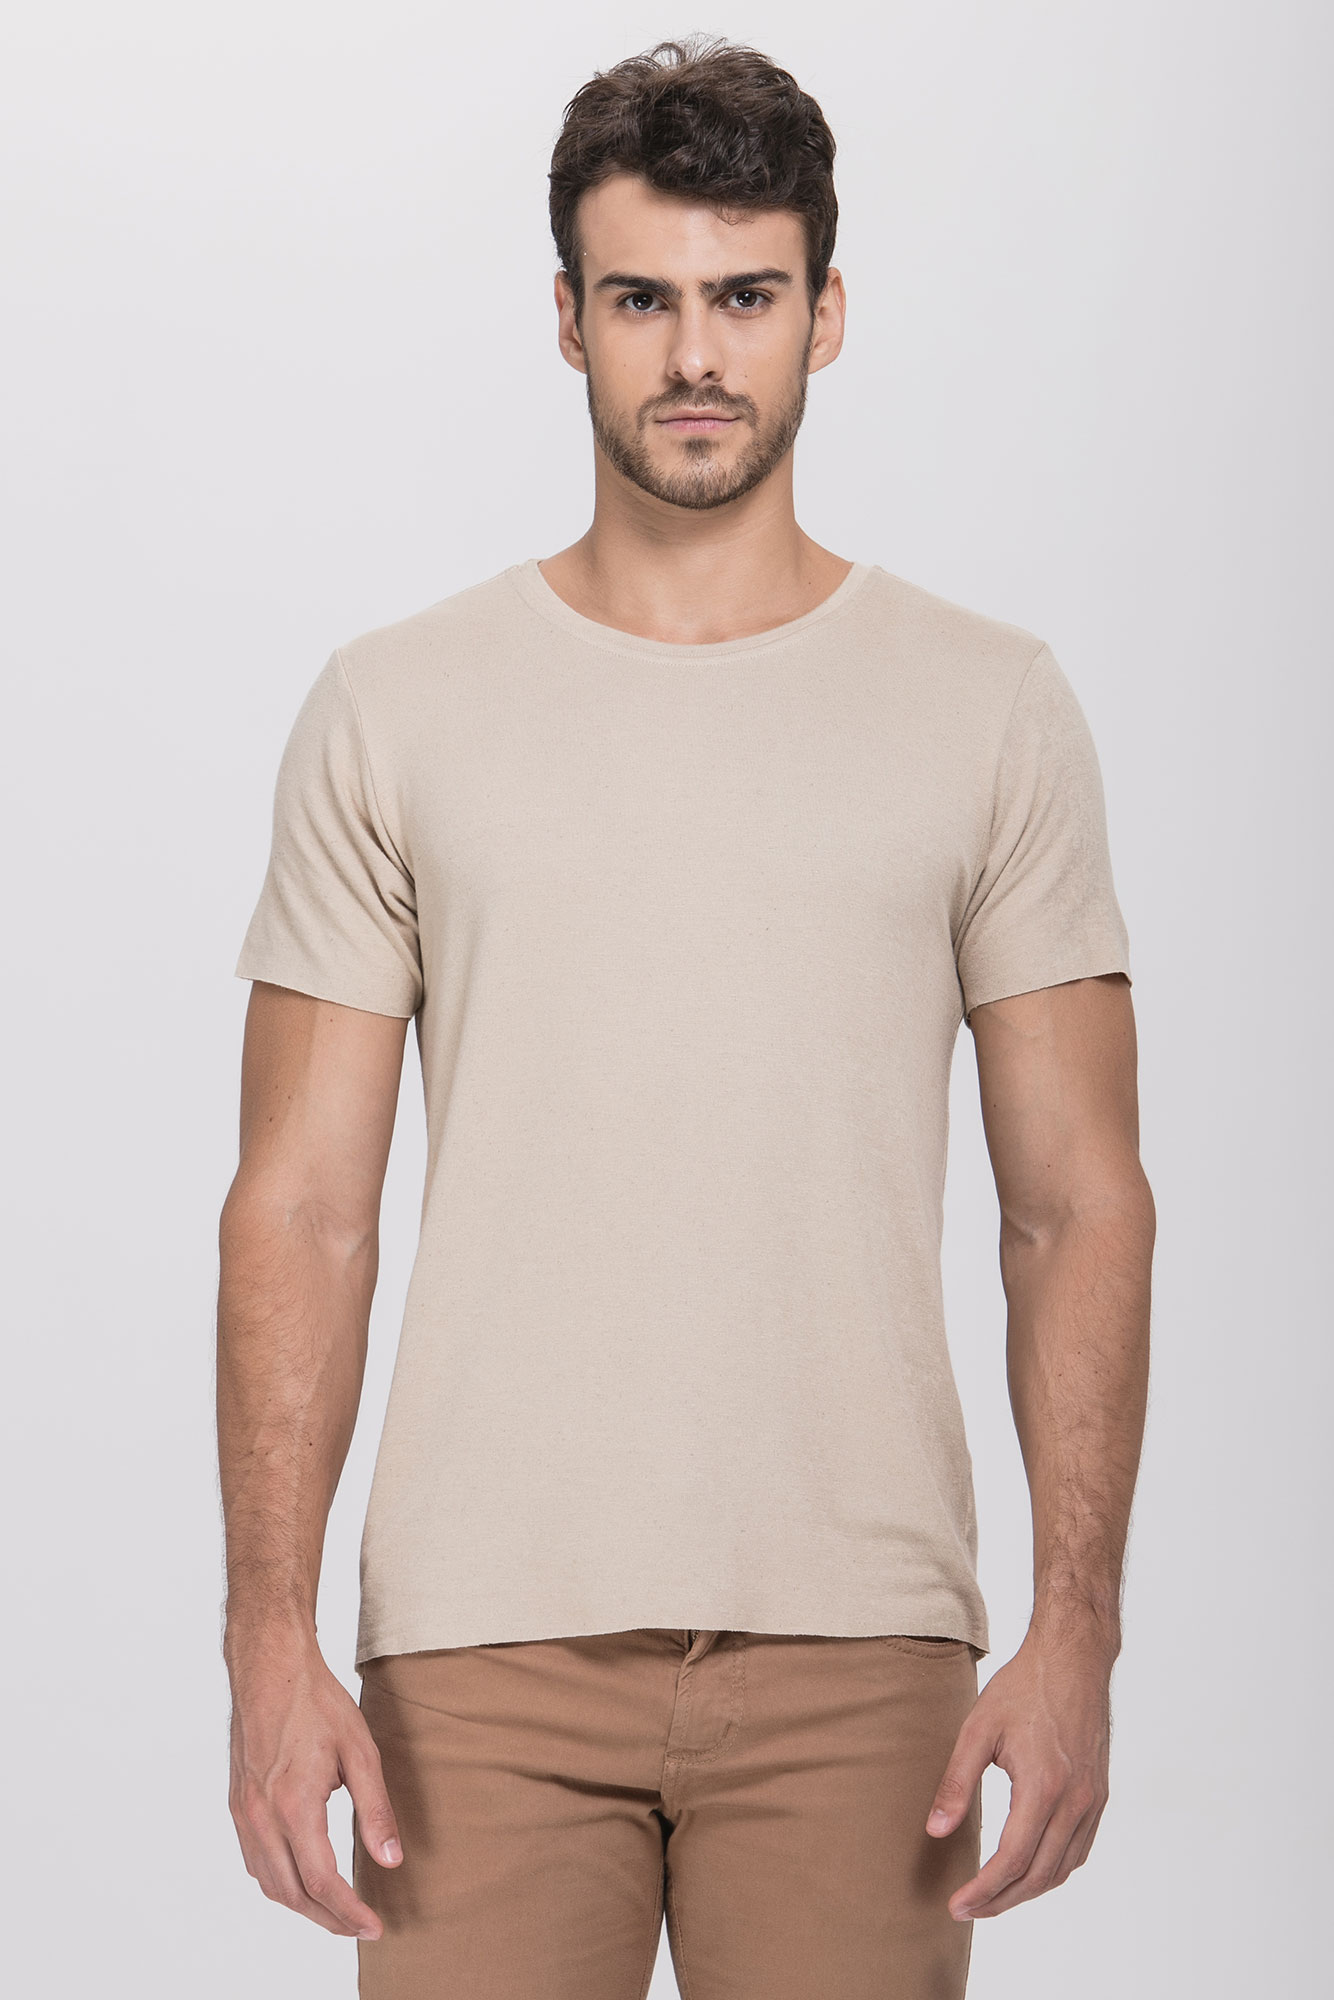 Camiseta Lino Natural Bege